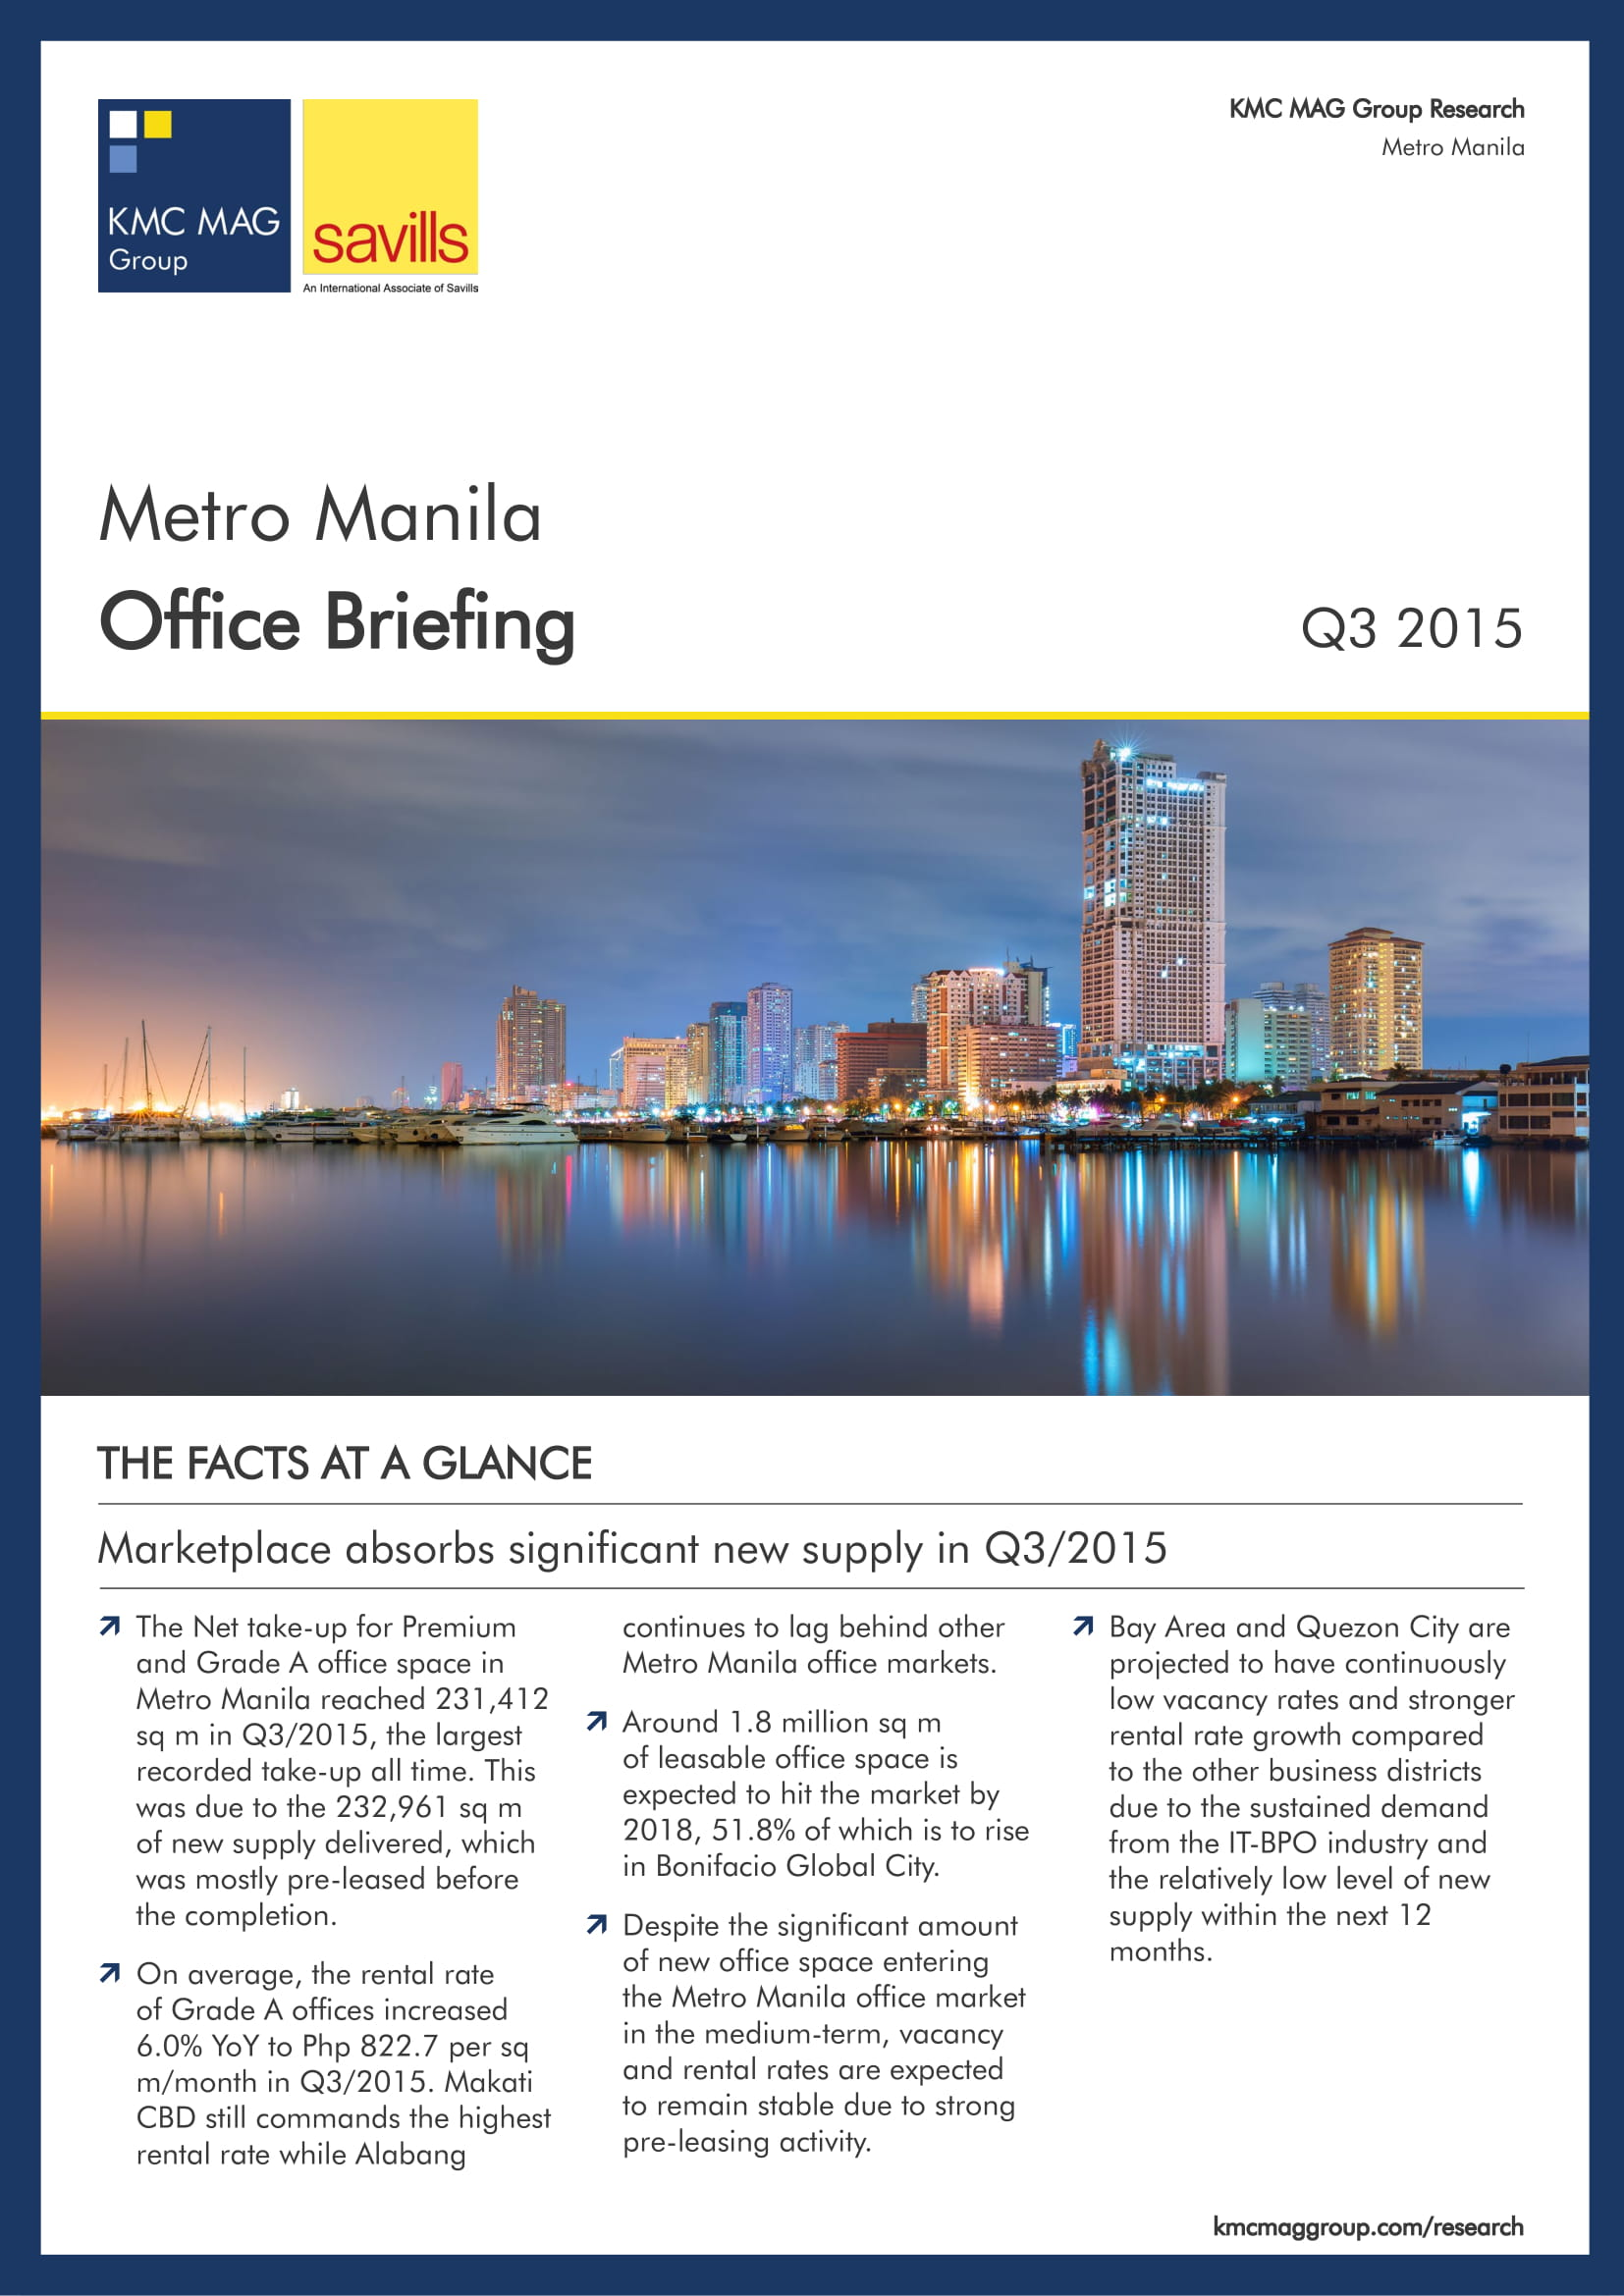 Metro Manila Office Briefing Q3 2015